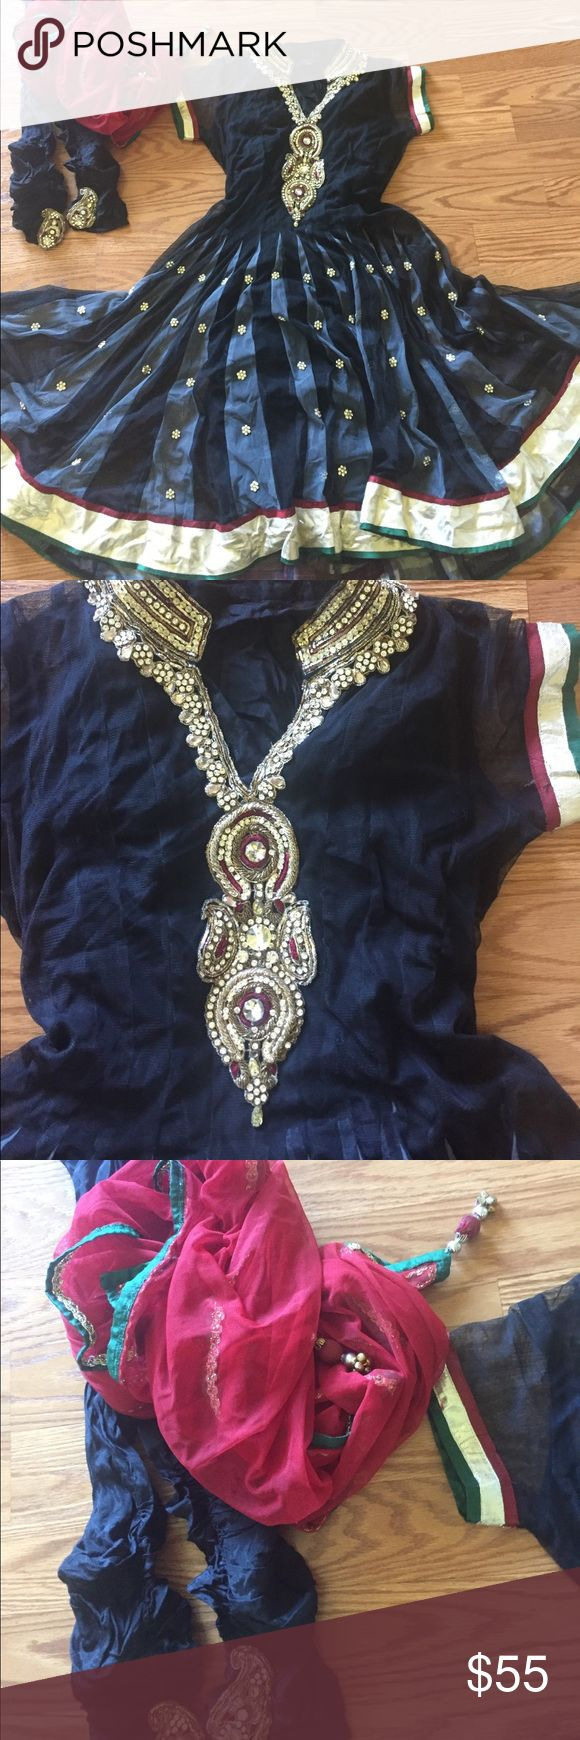 Anarkali salwar kameez sari wedding I have a slip that is separate. Not attached since it is her material . It is included . Nice looking one and color fits a sz S Dresses